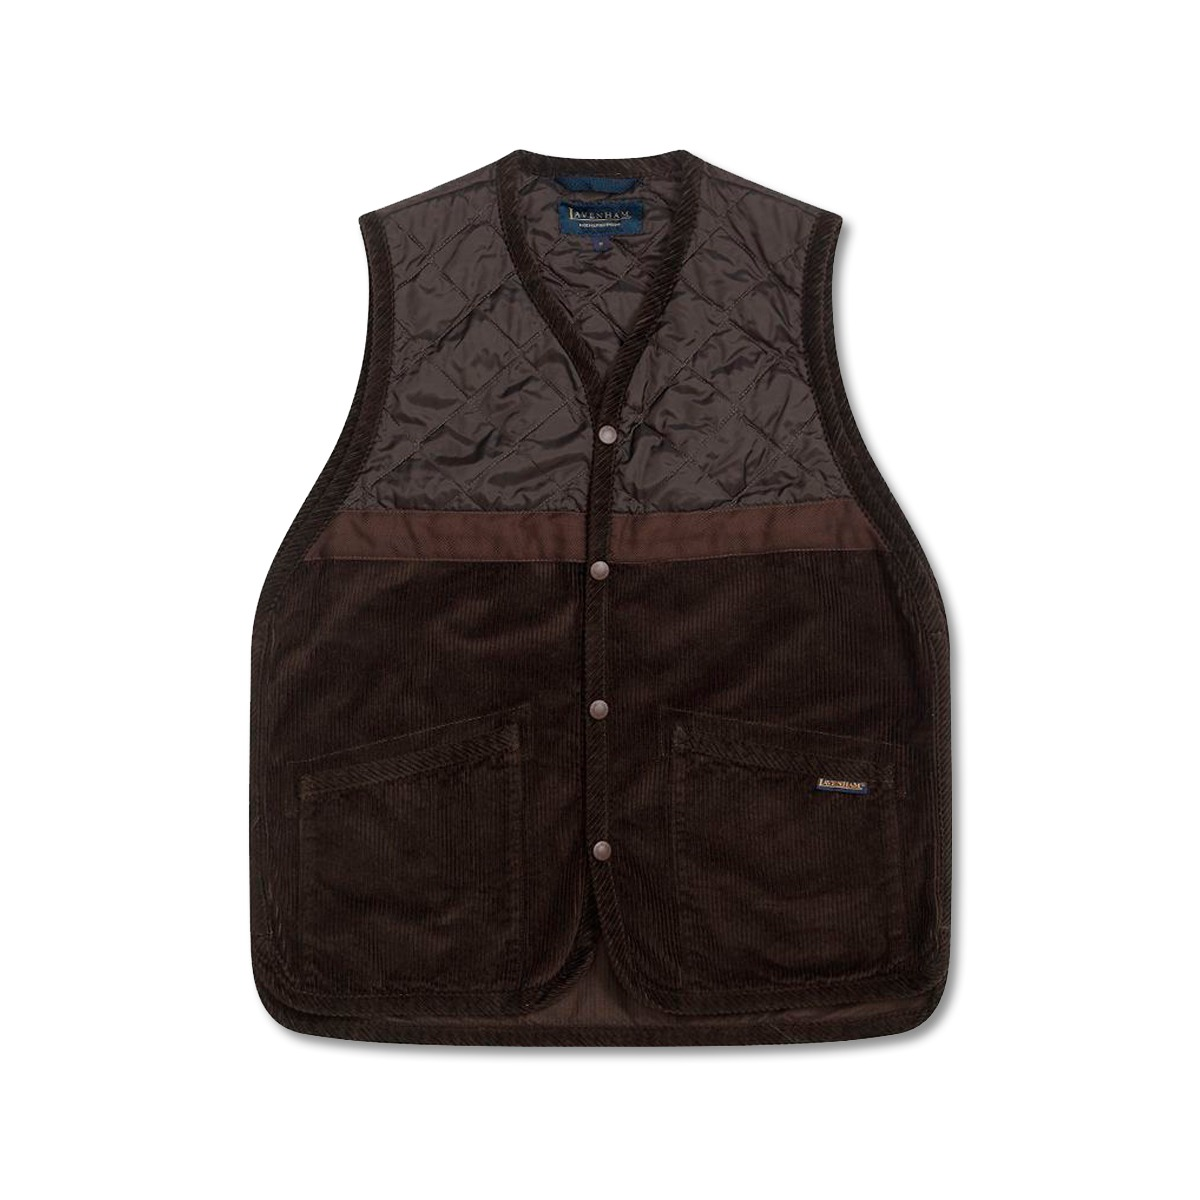 [LAVENHAM] WASHED CORD TAPED GILET 'BROWN'